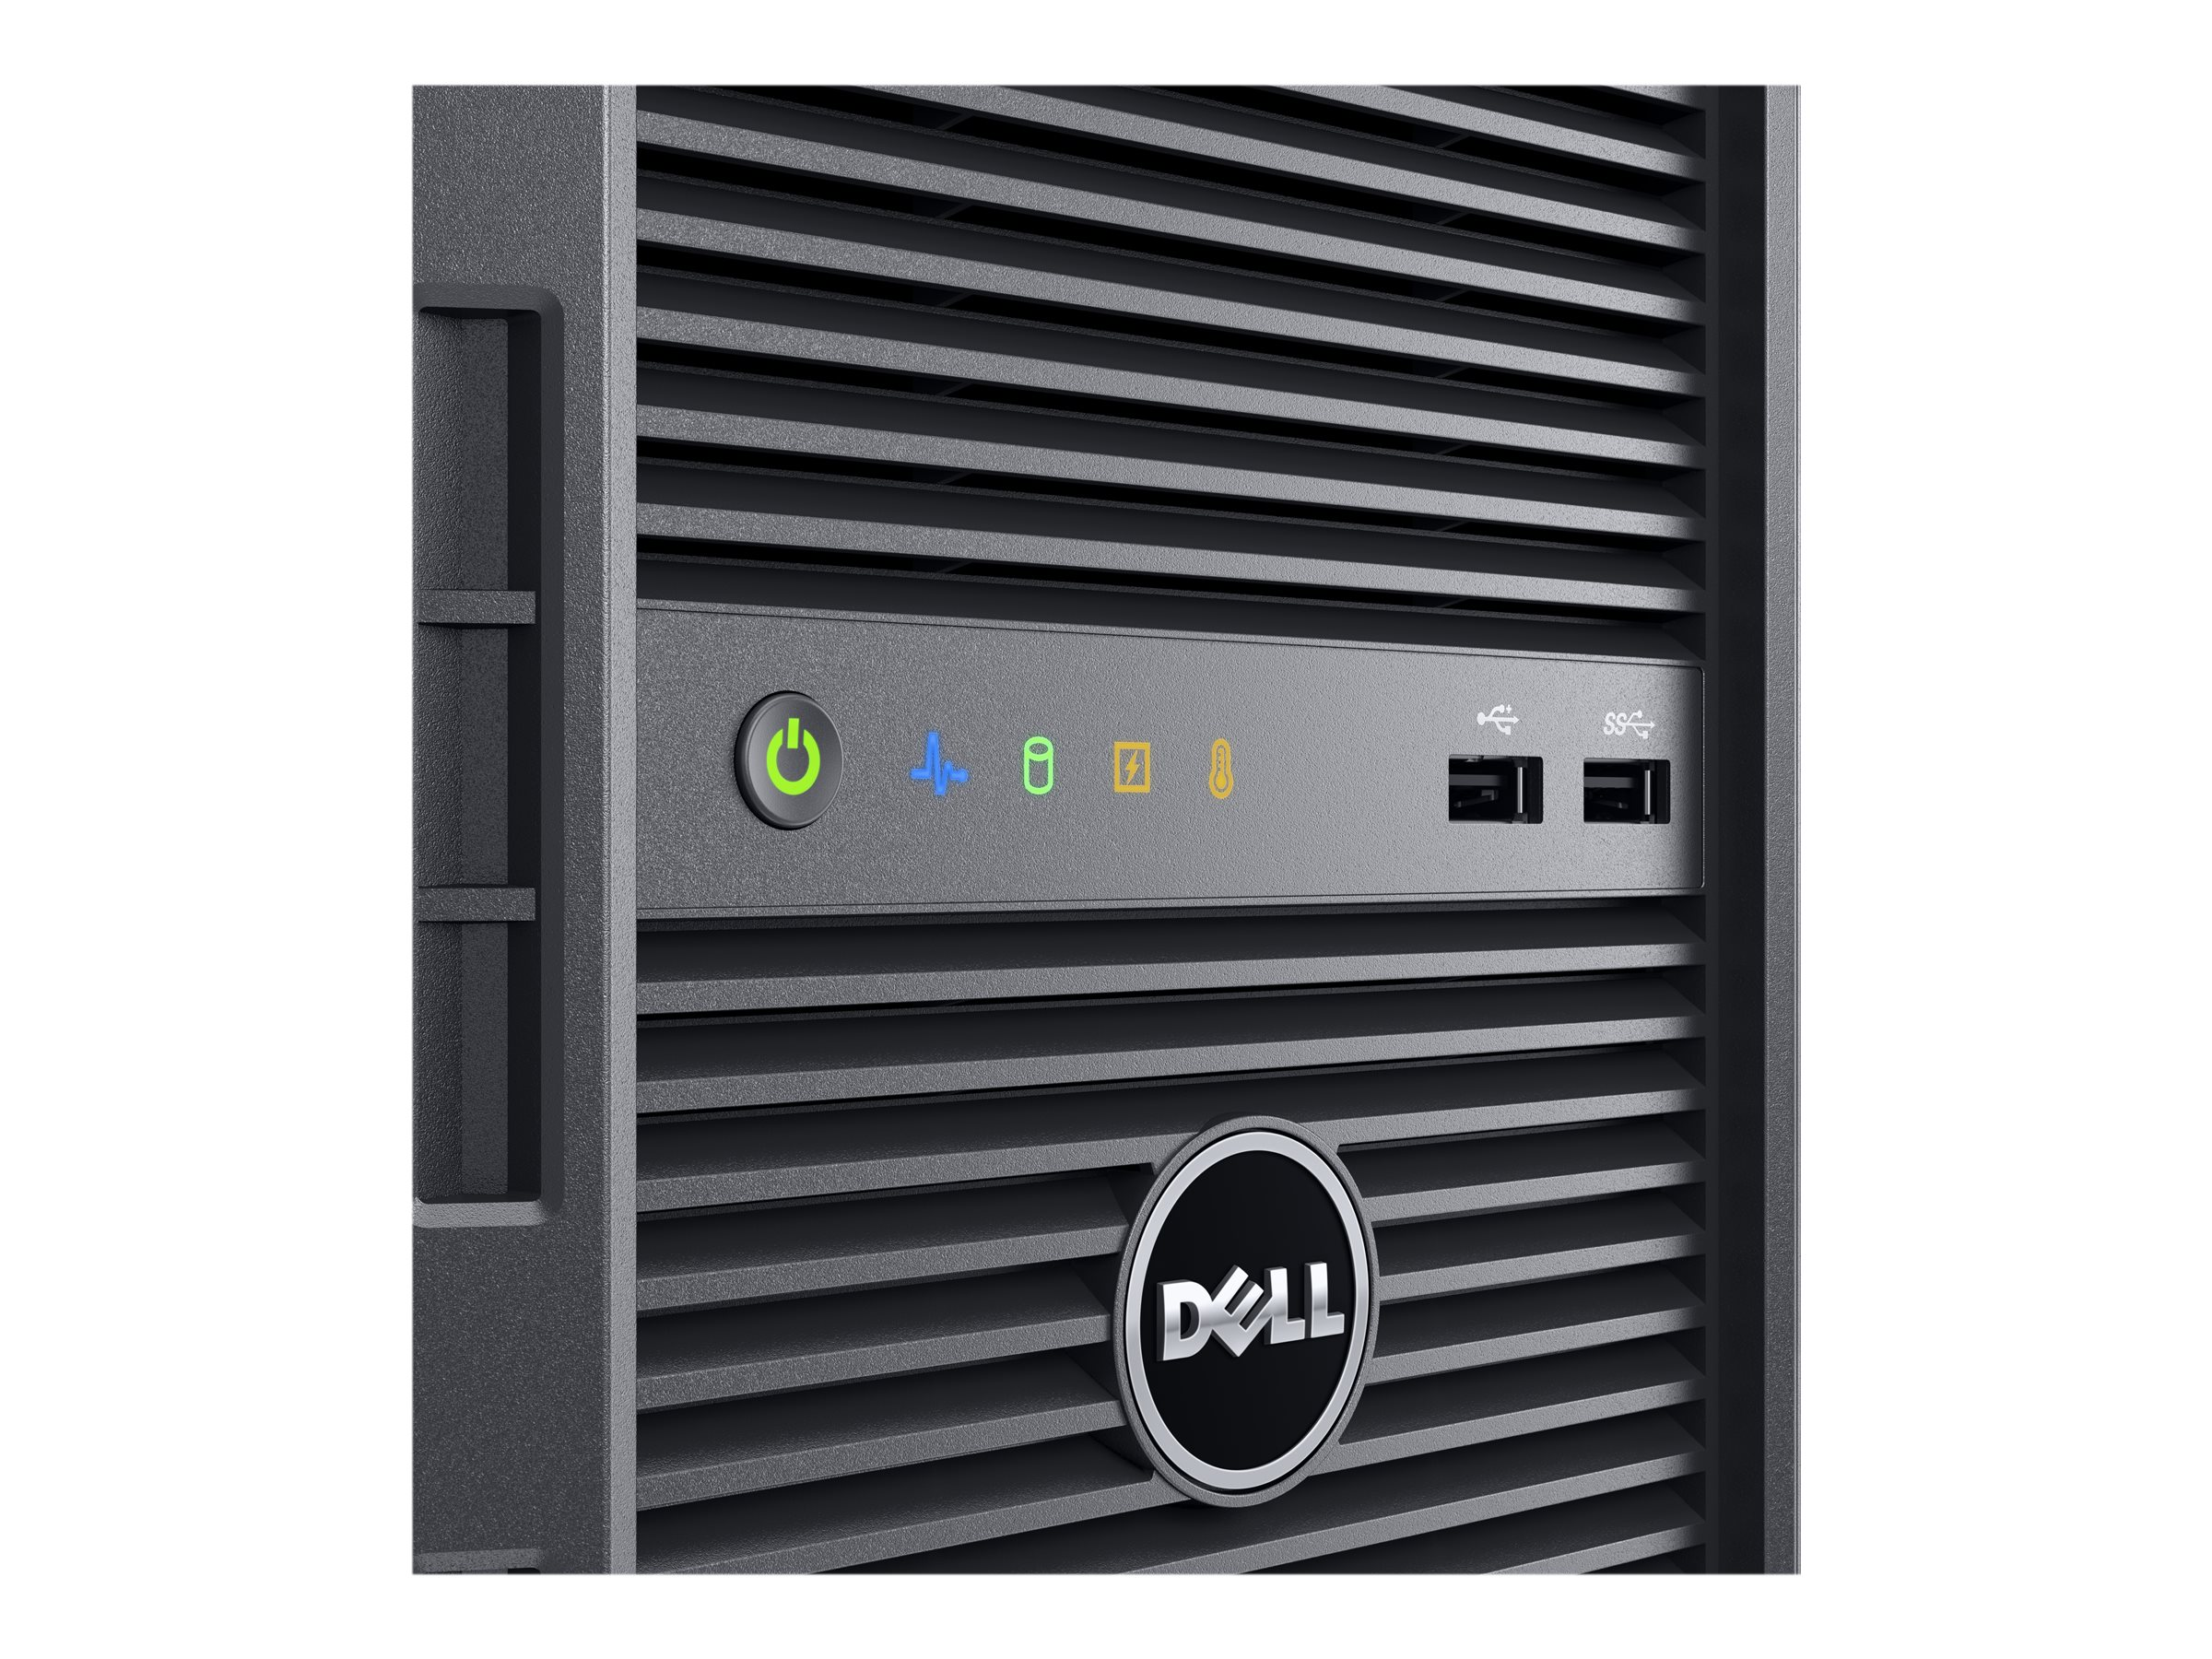 Dell PowerEdge T130 Intel 3GHz Xeon, 463-7651